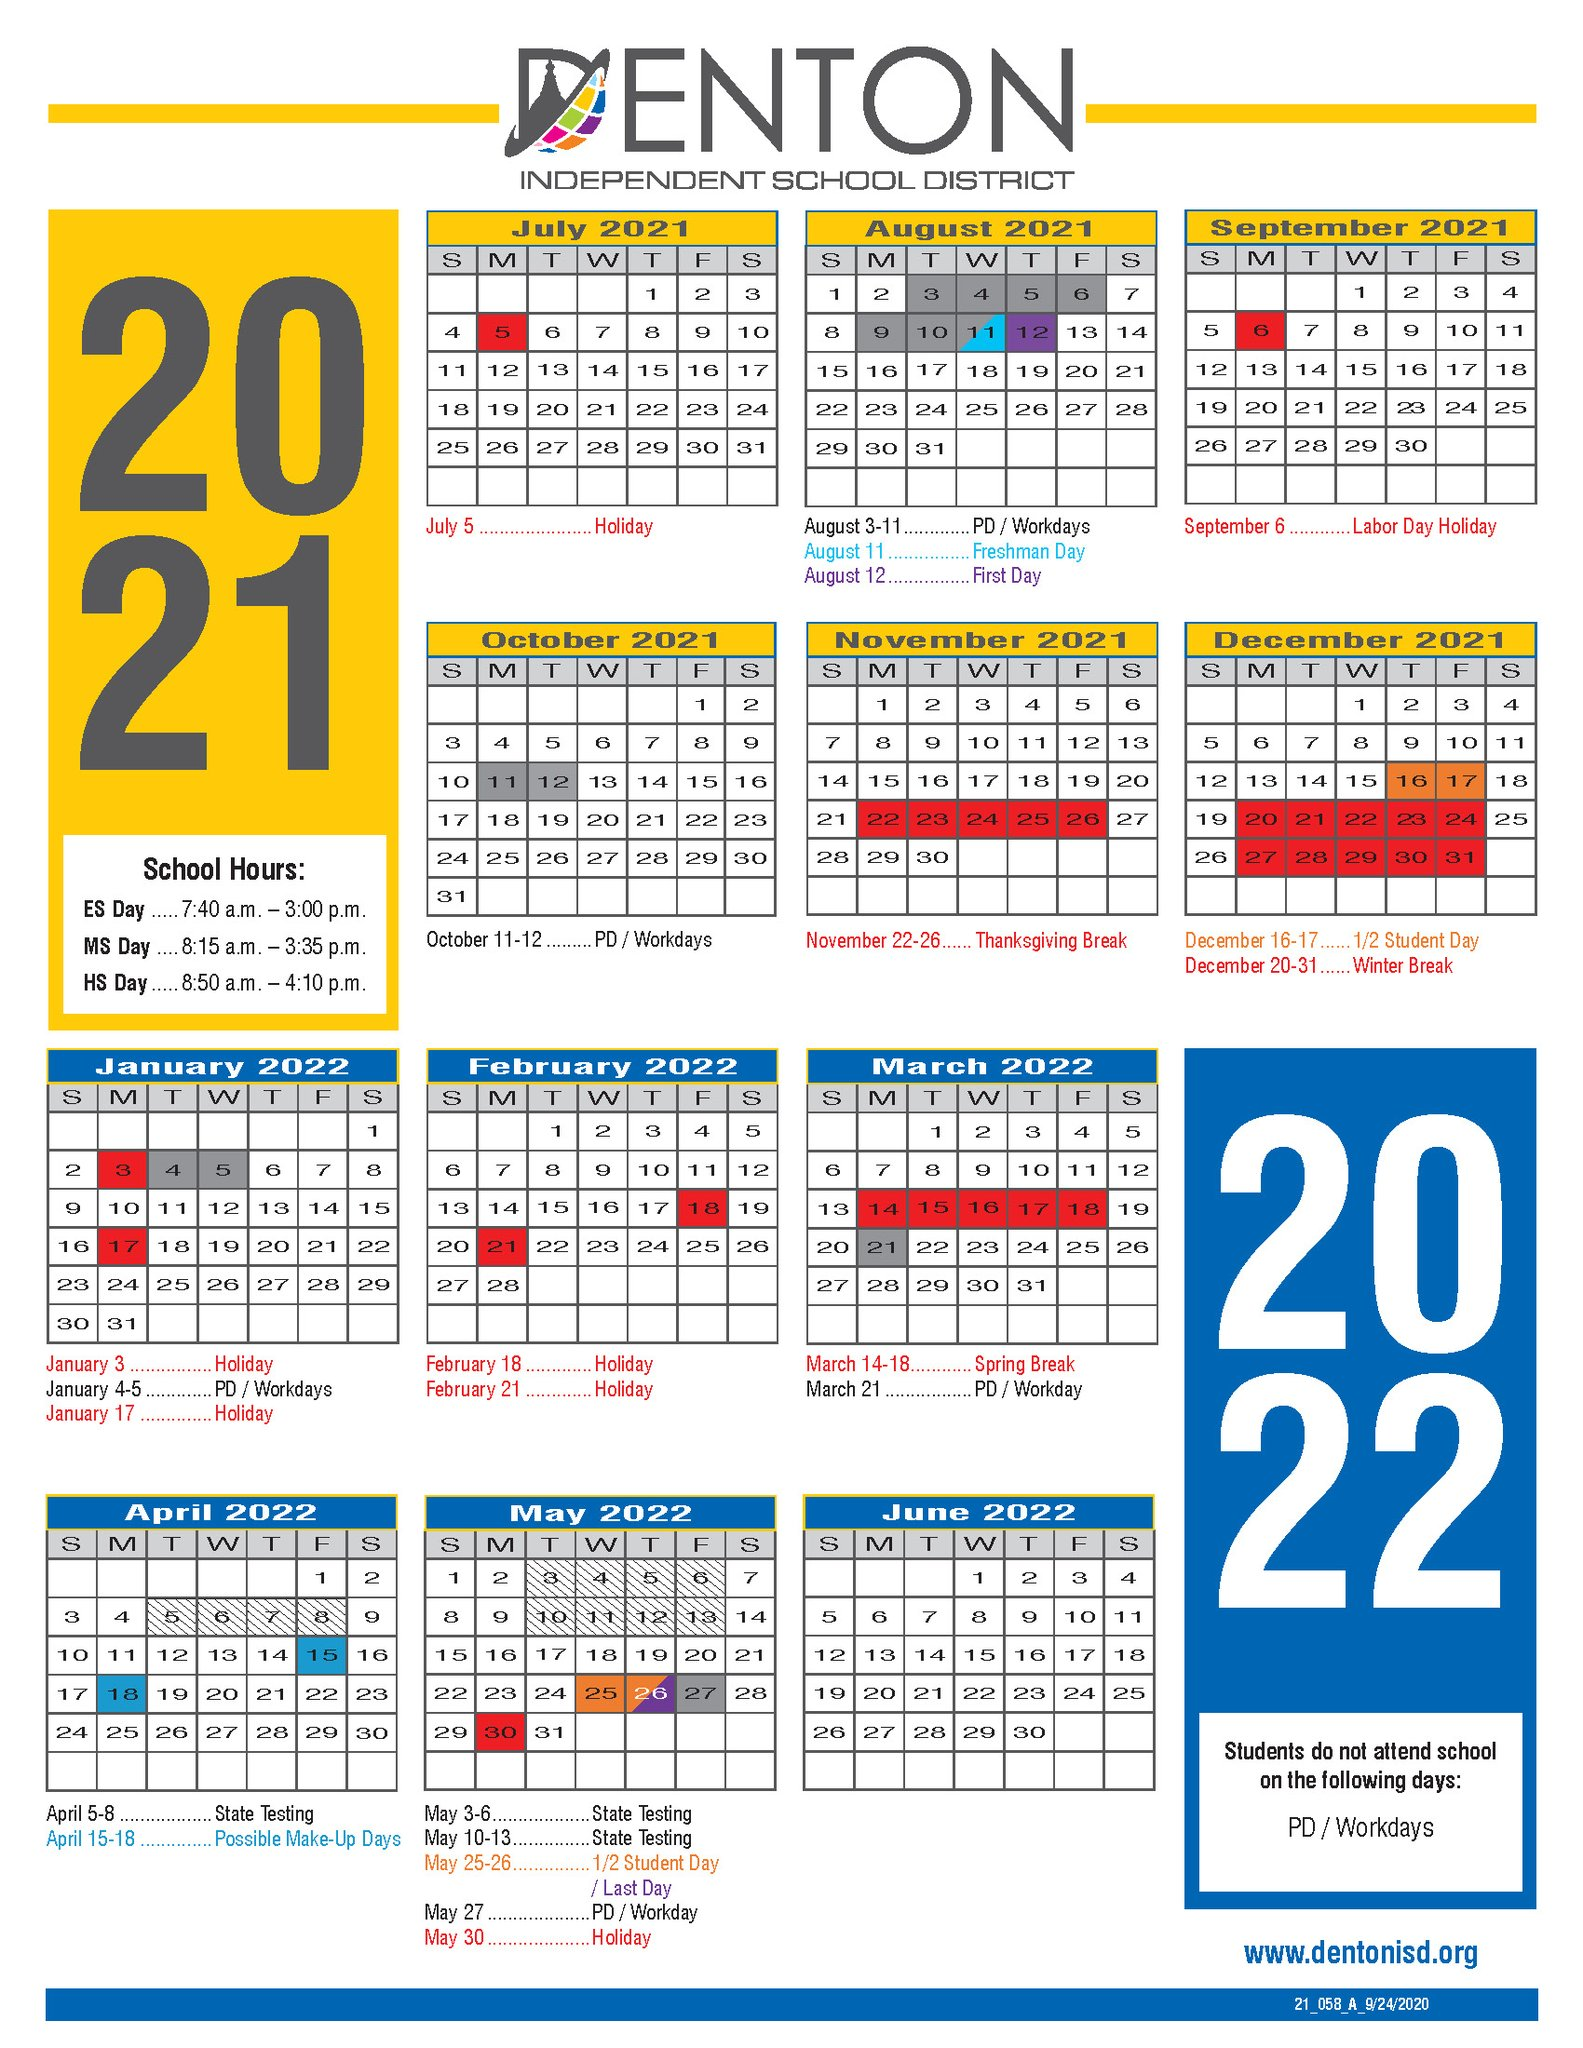 Denton Isd Calendar 2022.Denton Isd On Twitter The Calendar For The 2021 22 School Year Has Been Released Take A Look And Make Your Plans Accordingly It S Going To Be A Great Year Https T Co Tzhdwp7rtw Https T Co Adai05qj2k